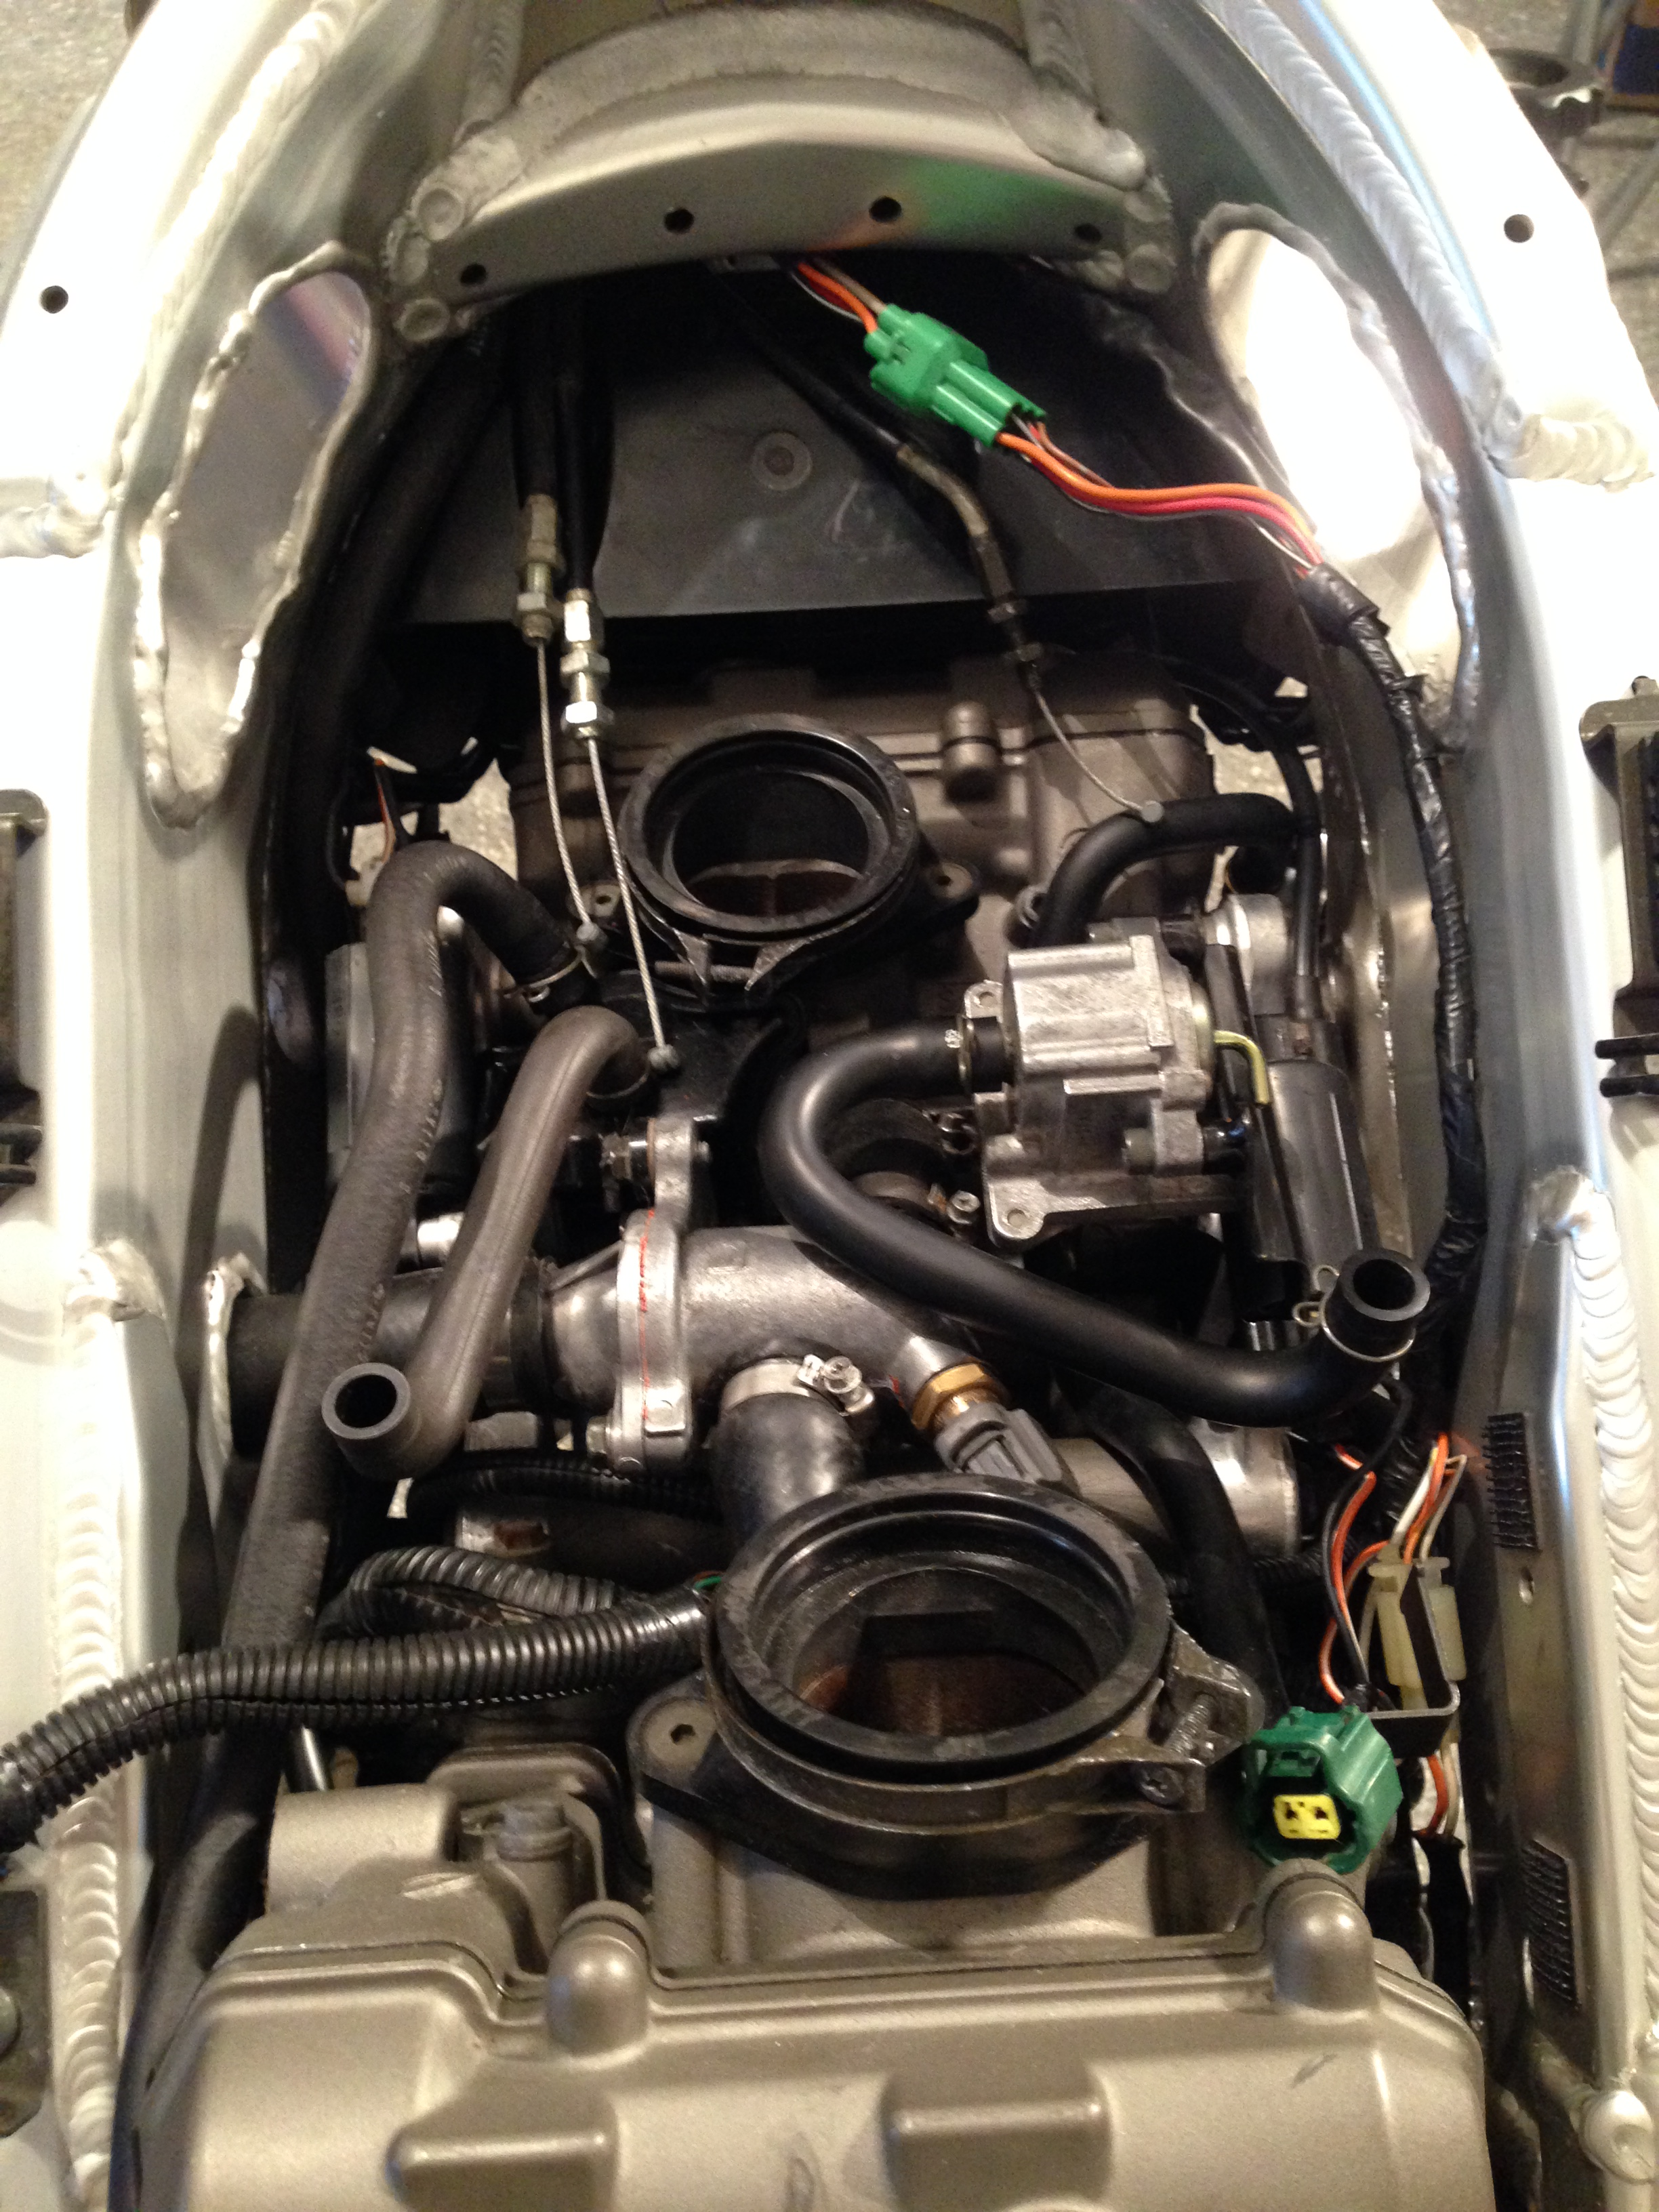 Airbox hose placement after pair vale removal...-img_1415.jpg